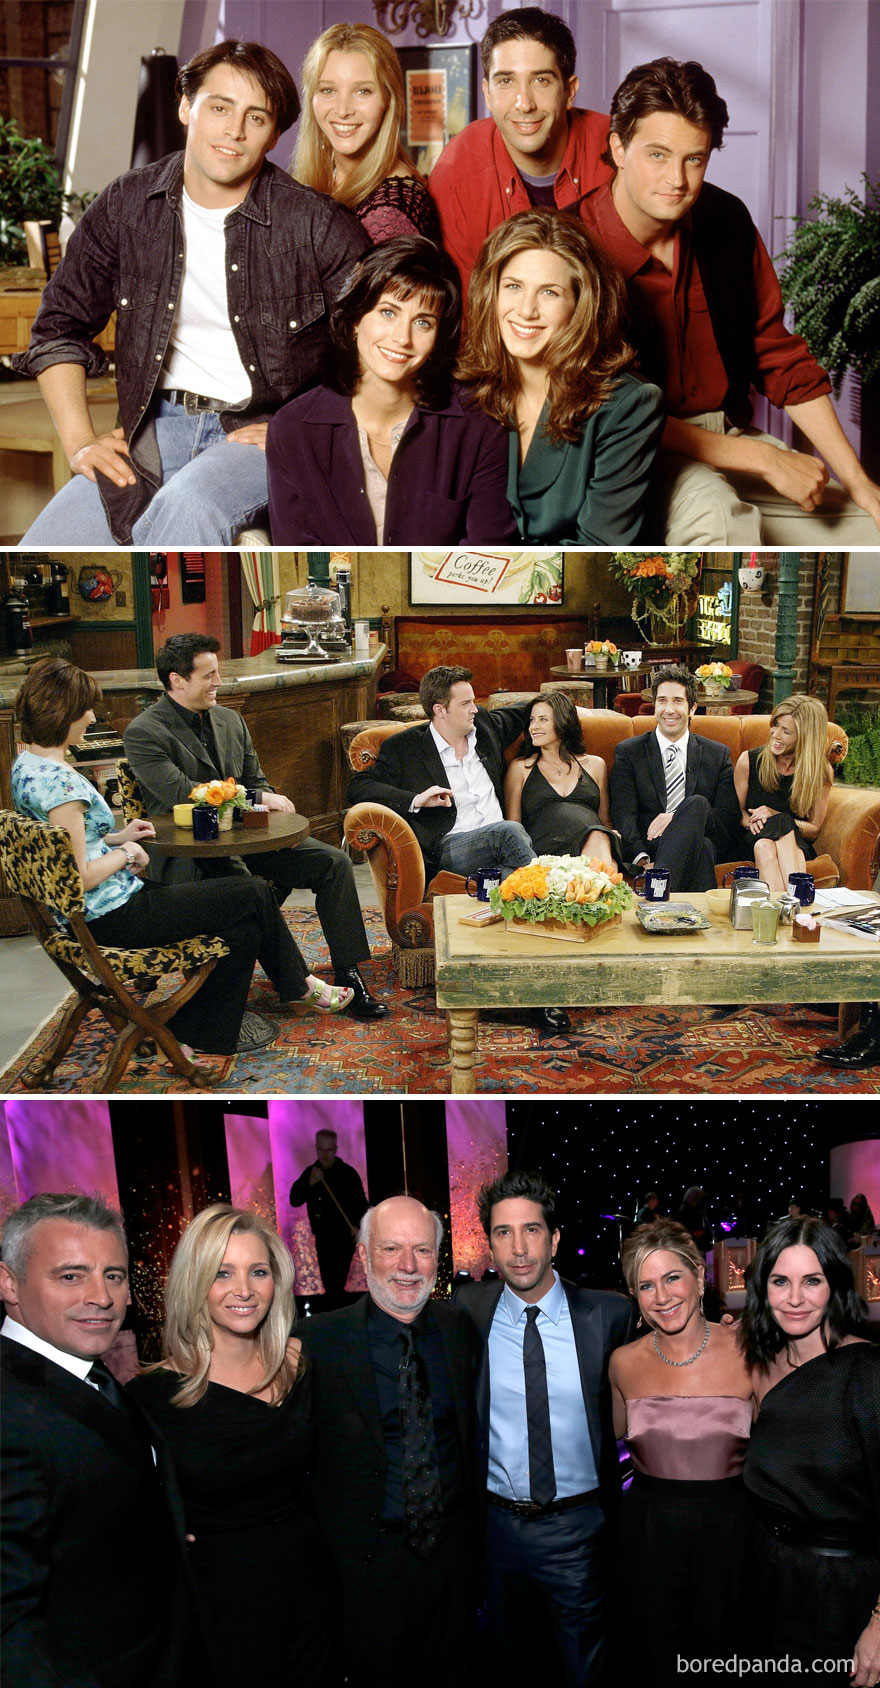 Friends: 1994 Vs. 2004 Vs. 2016